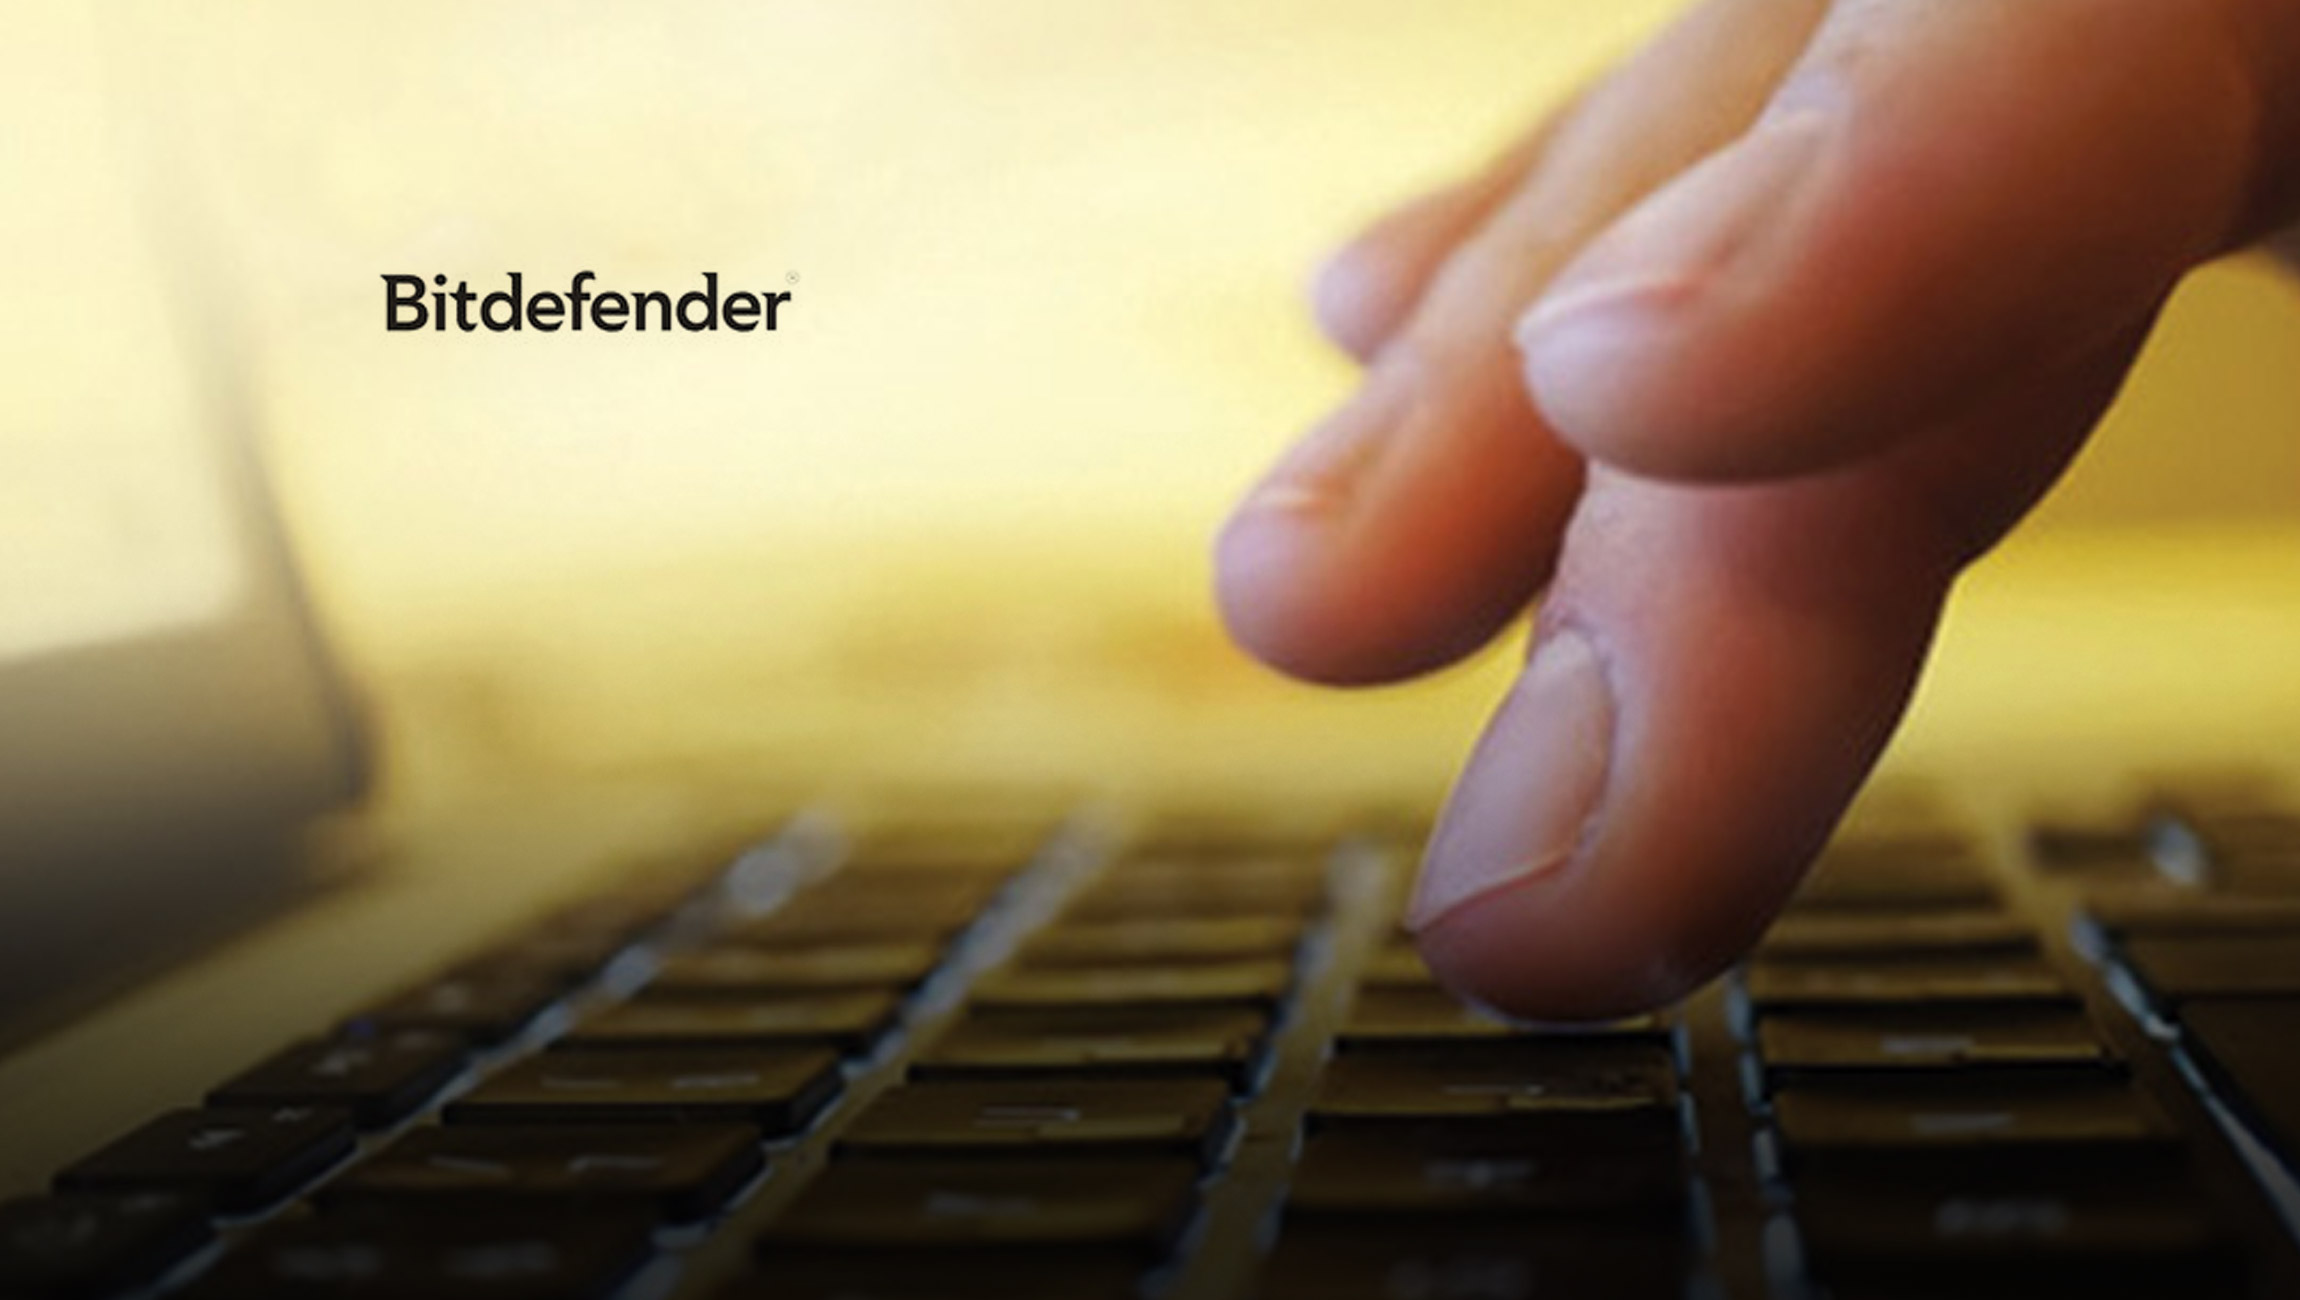 Bitdefender Strengthens its Global Channel Partner Program as Demand for Advanced Cybersecurity Solutions Grow